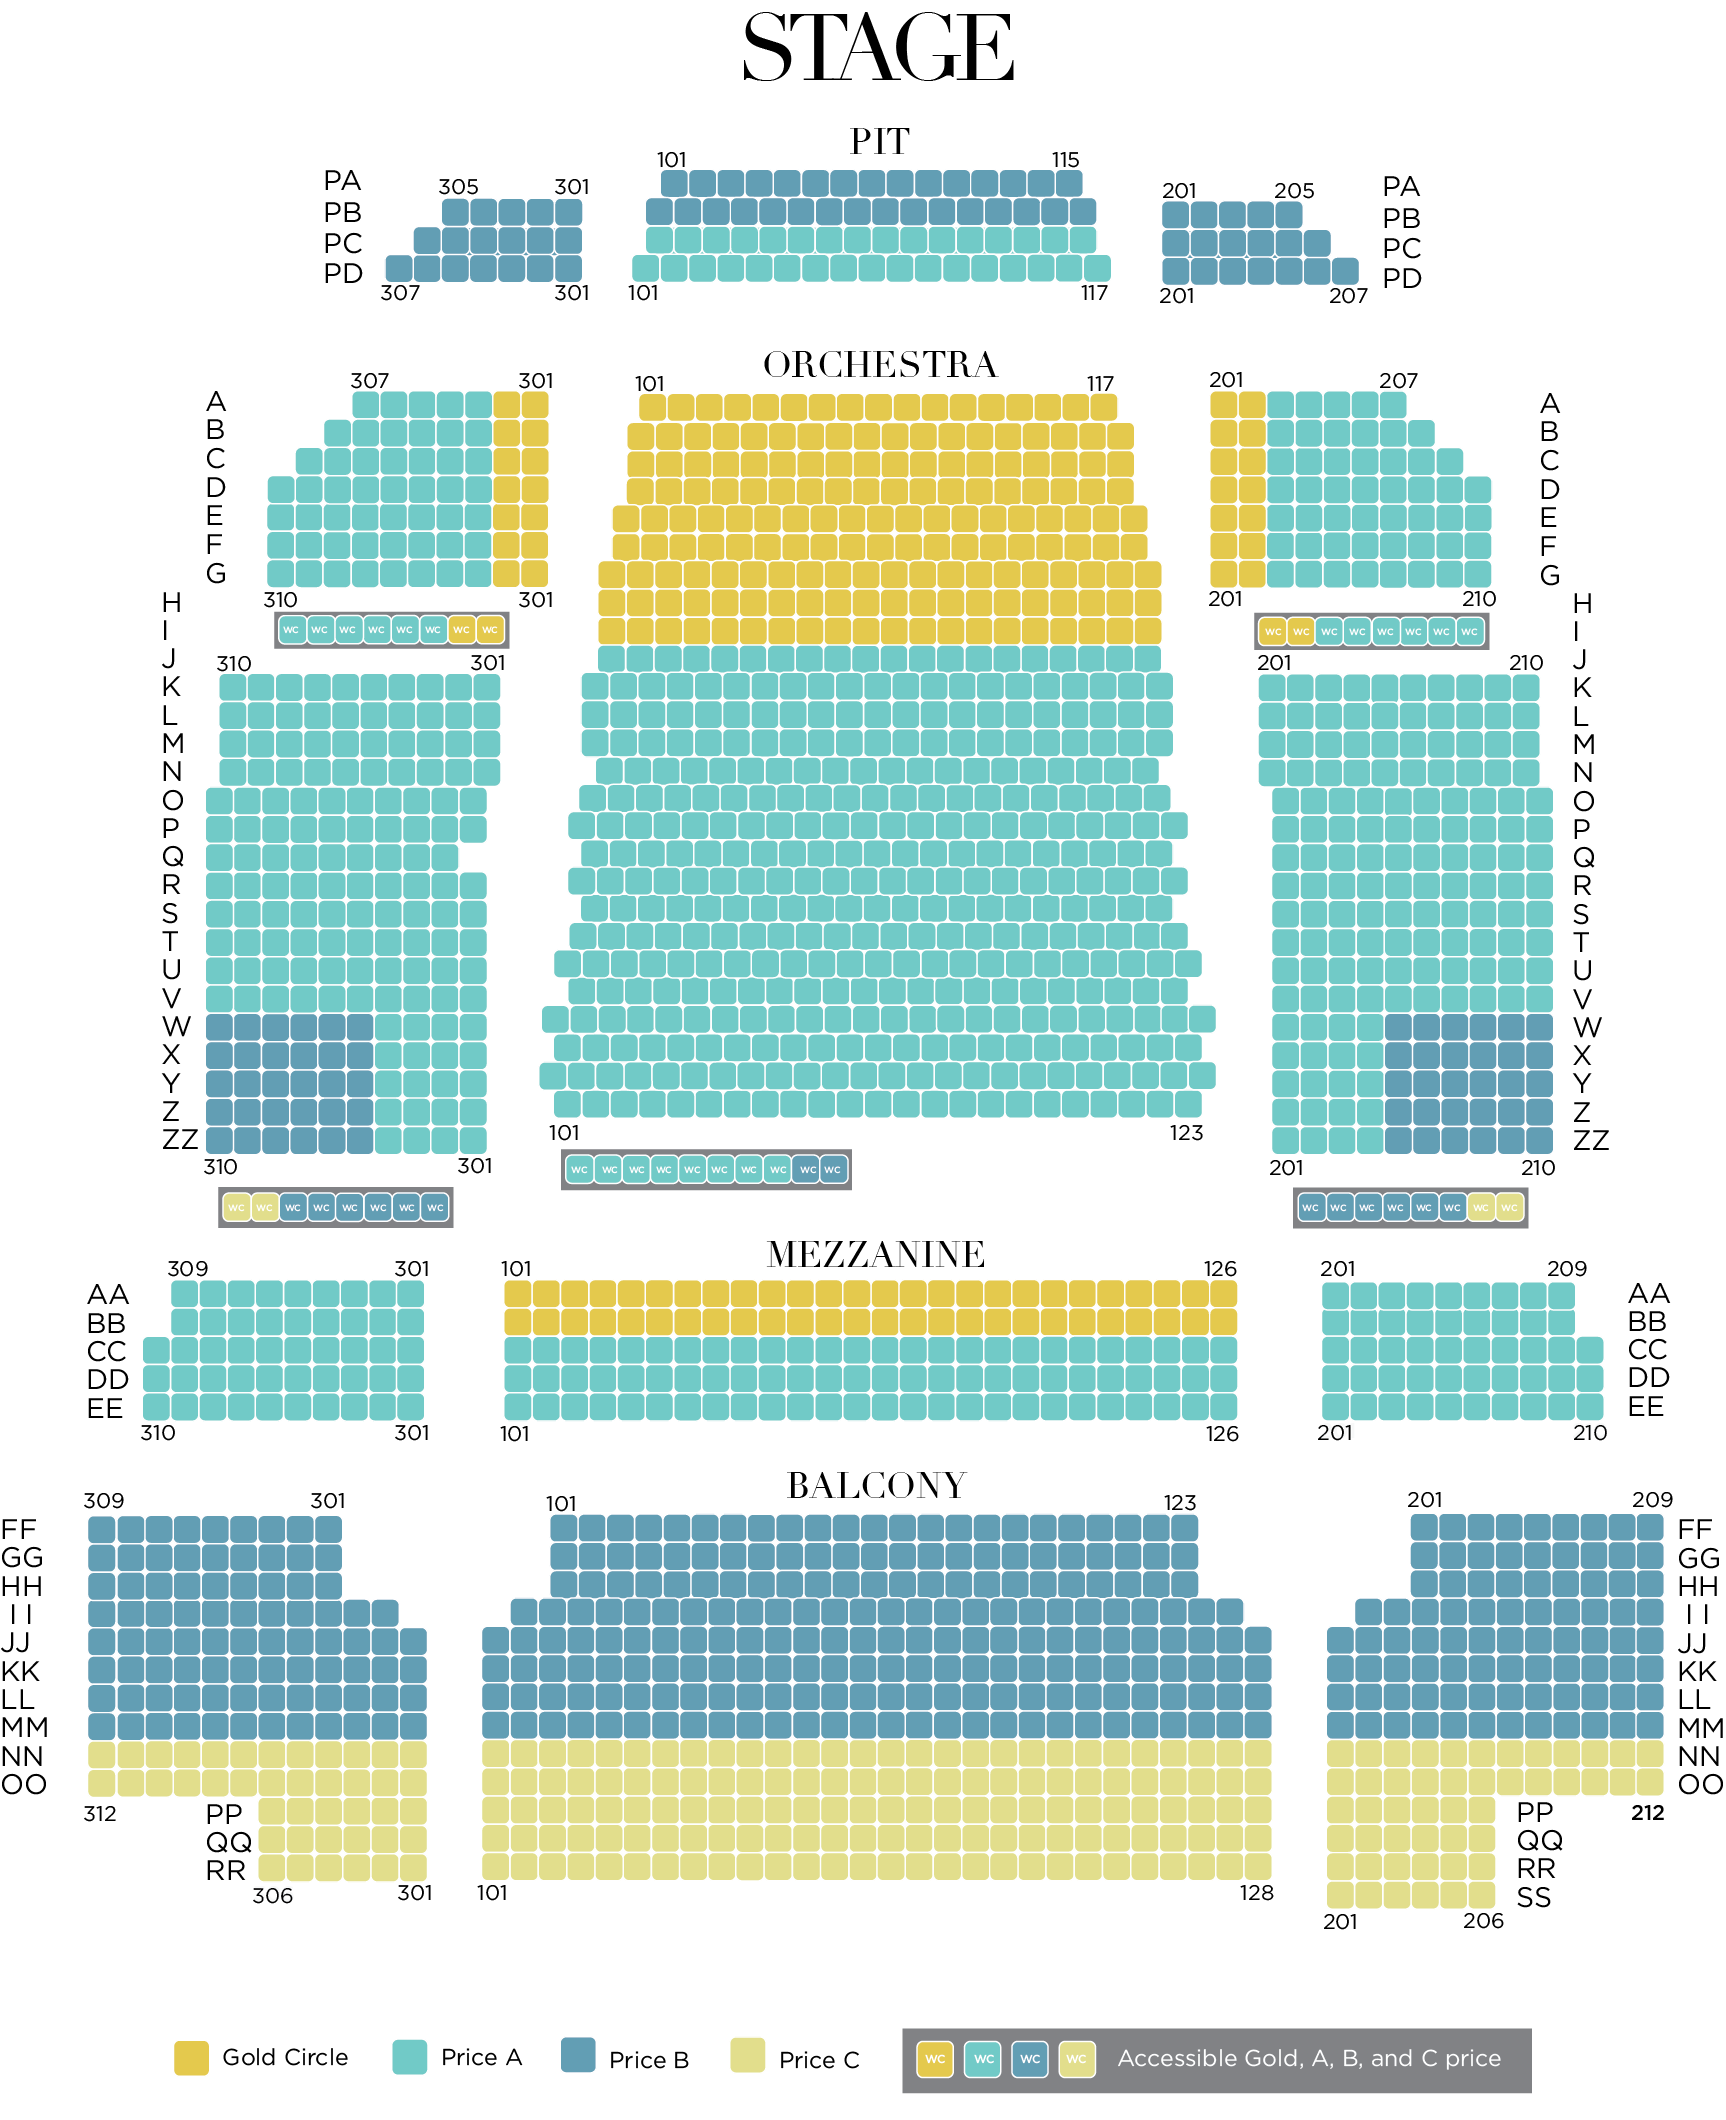 19-20 Pricing Seating Chart